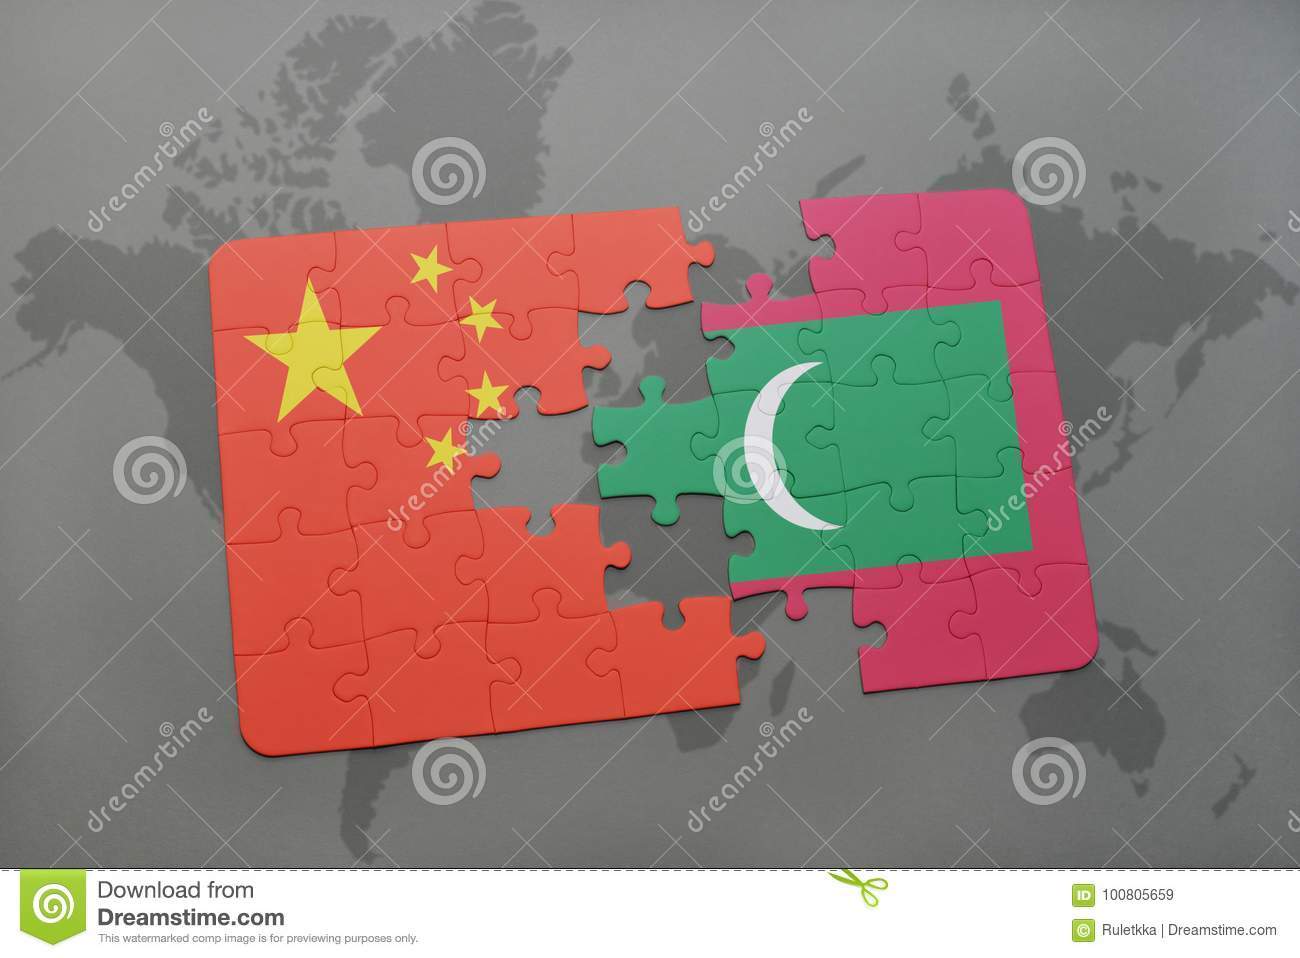 Puzzle with the national flag of china and maldives on a world map download puzzle with the national flag of china and maldives on a world map background gumiabroncs Choice Image